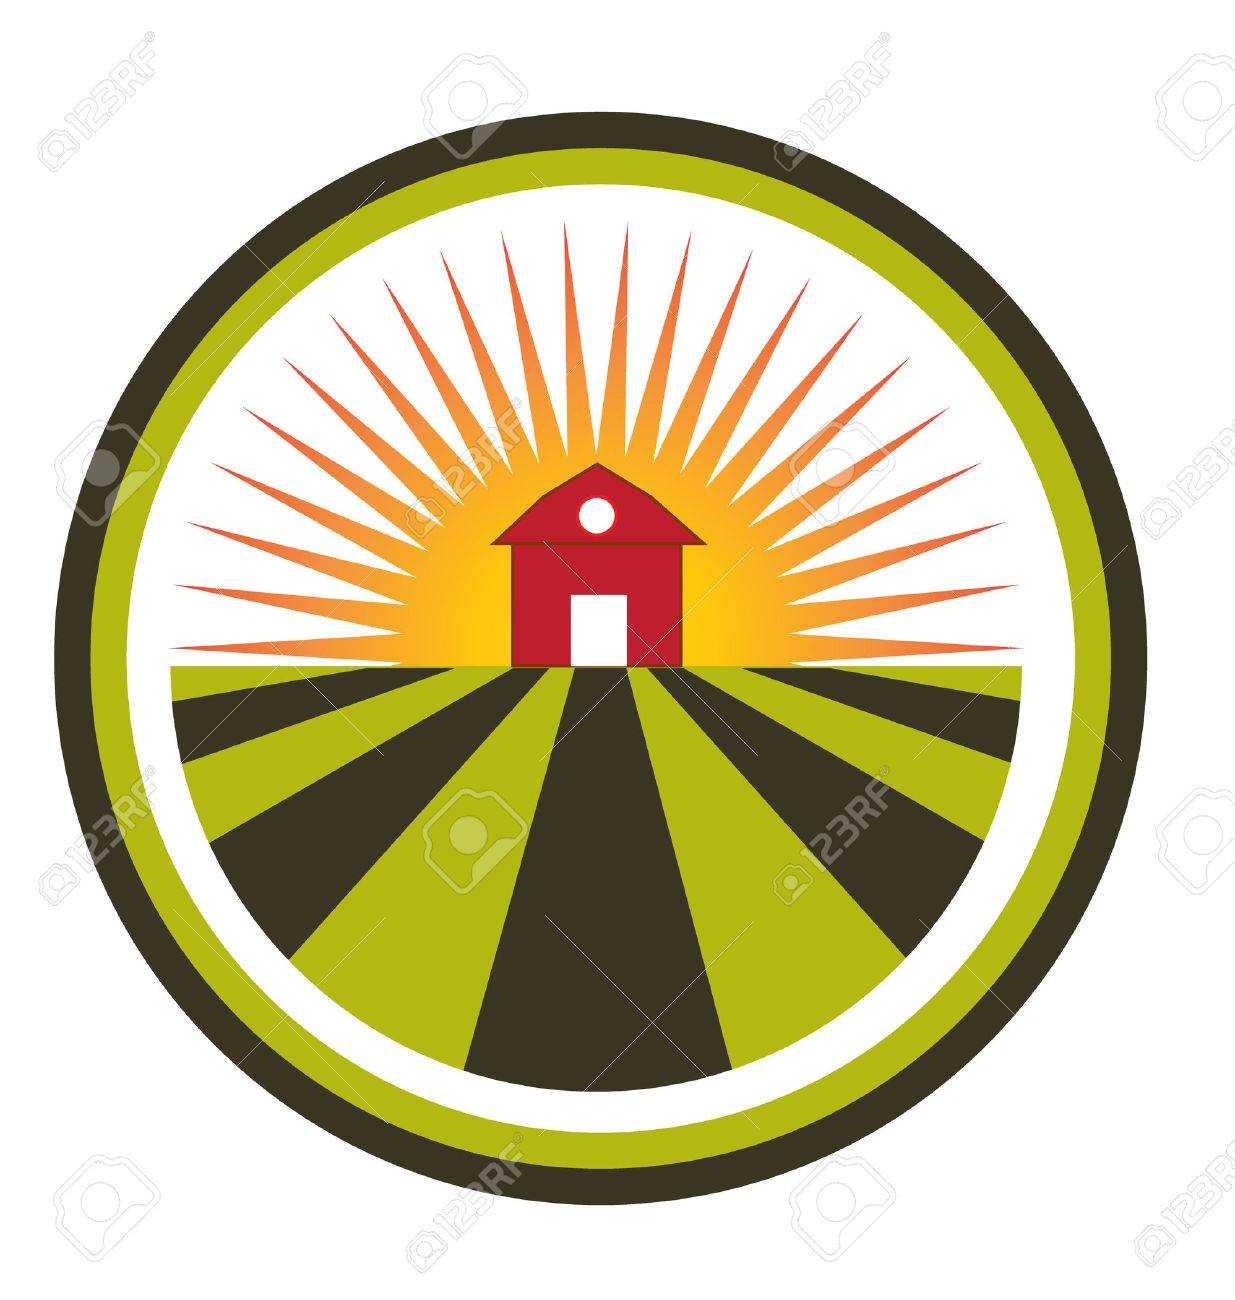 sun agriculture landscape and farm harvest label icon royalty free rh 123rf com Farmer Vector Art Free Cartoon Pictures of Farms and Crops Troctors